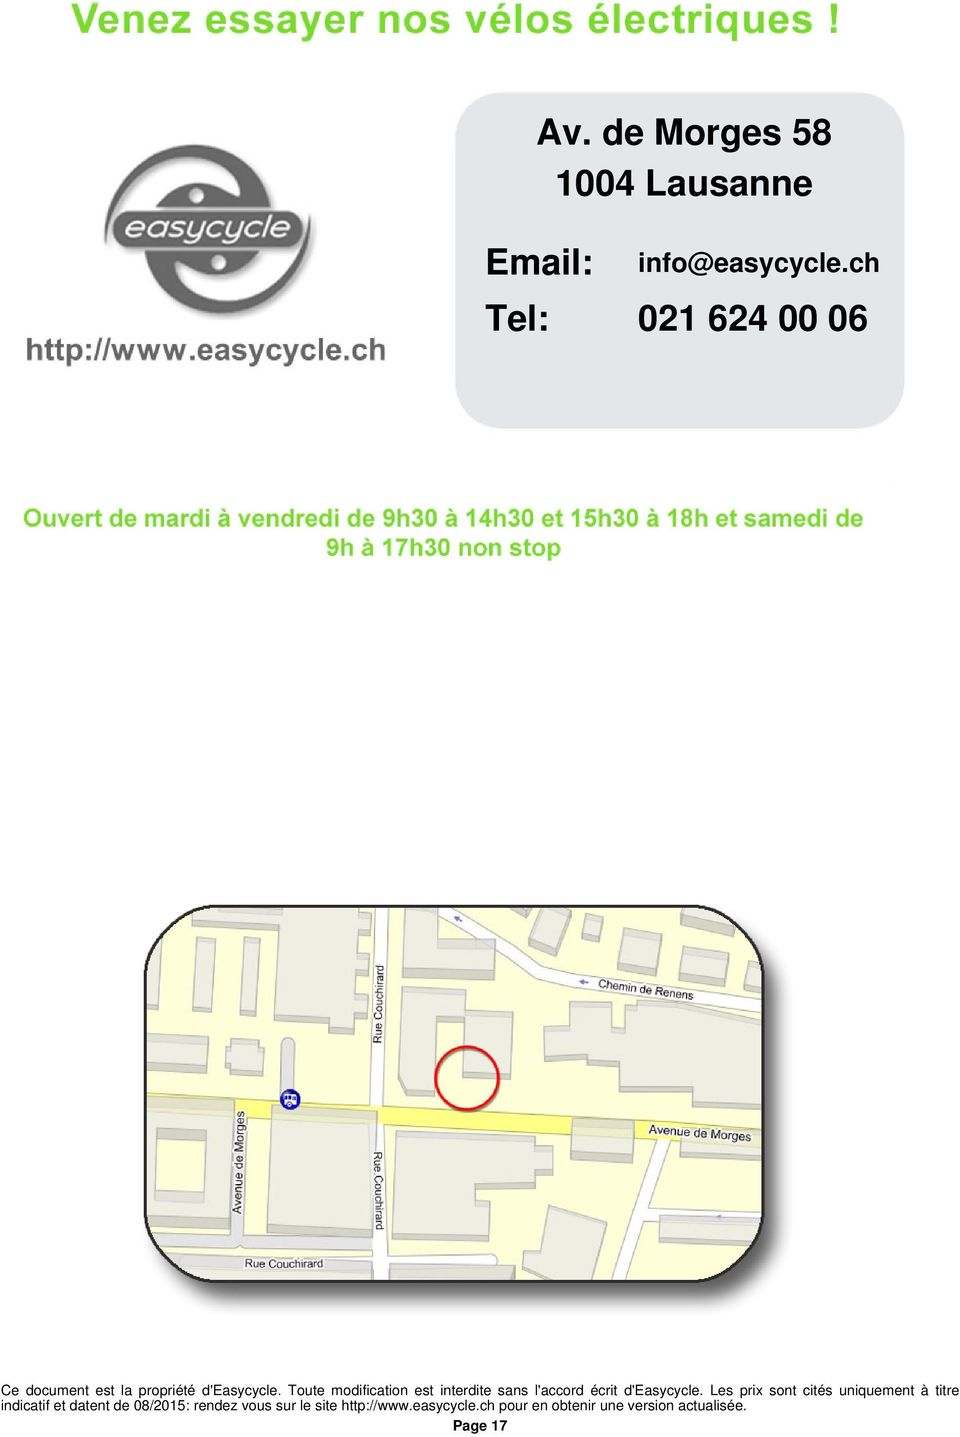 info@easycycle.